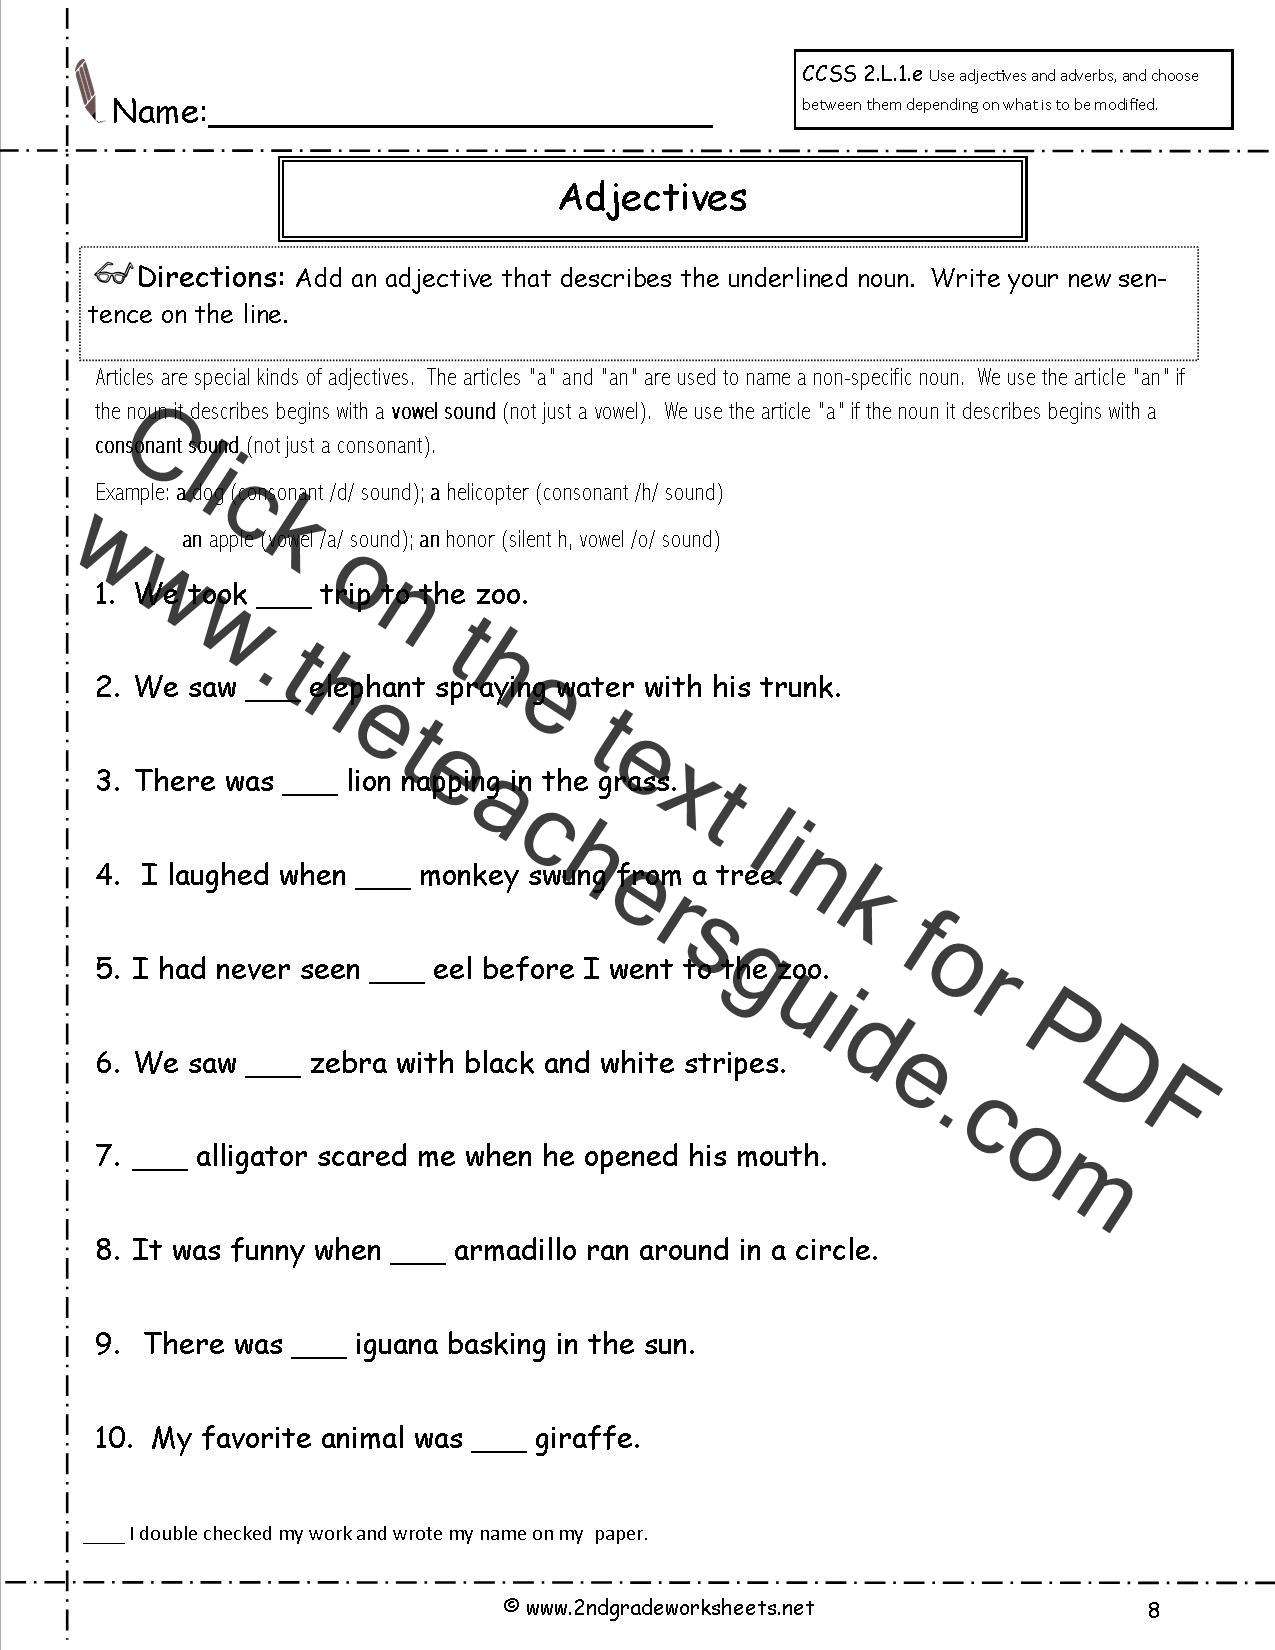 Worksheets 2nd Grade Grammar Worksheets free languagegrammar worksheets and printouts adjectives worksheets